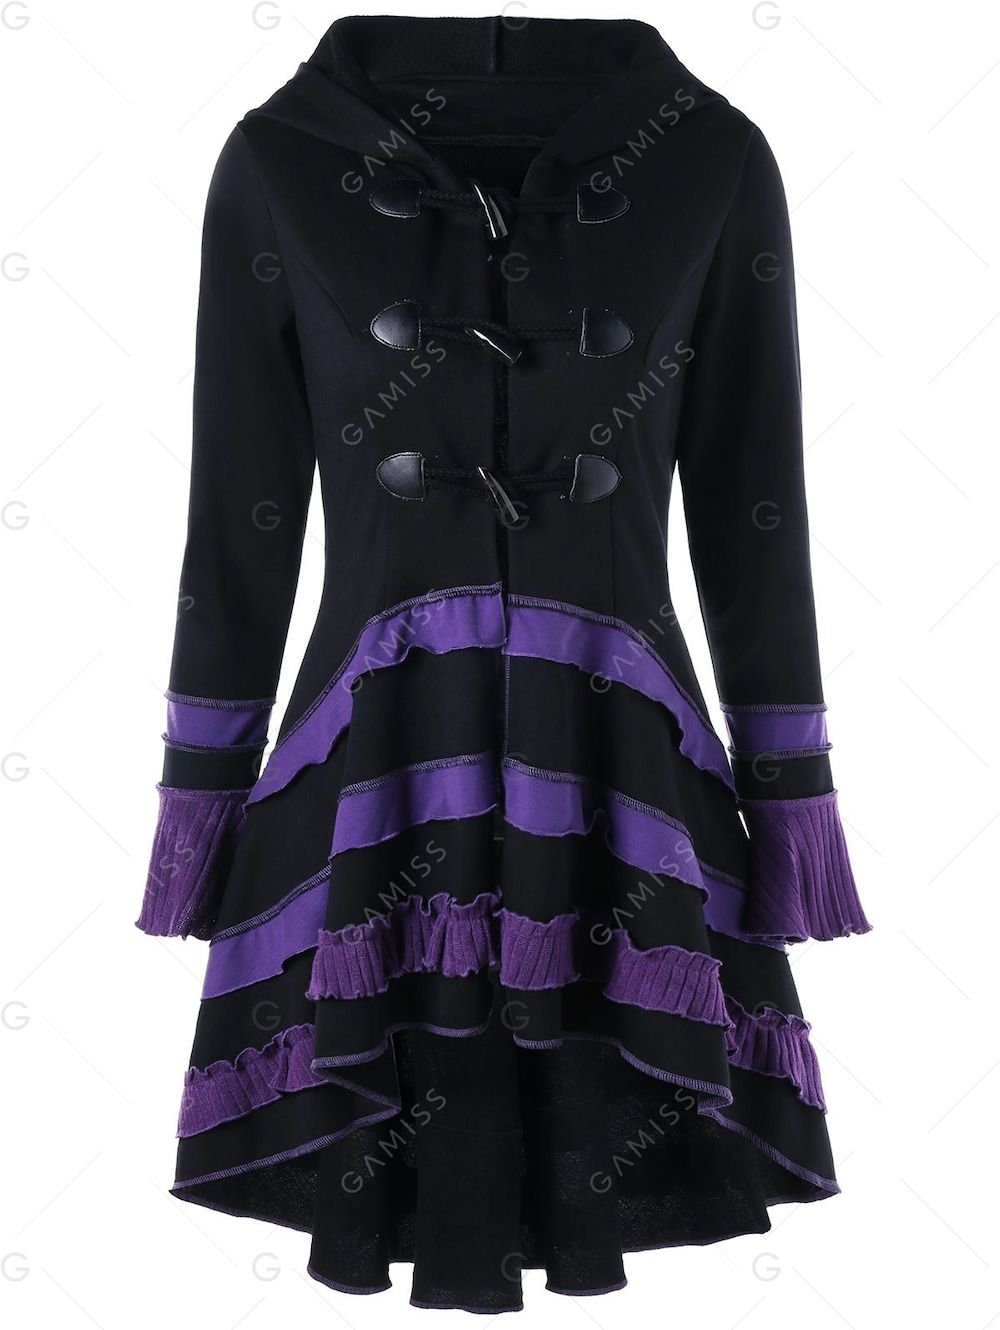 Coat High High Lace up and low Duffle Buckle Black Low Clothes Pyq1cWTnFZ